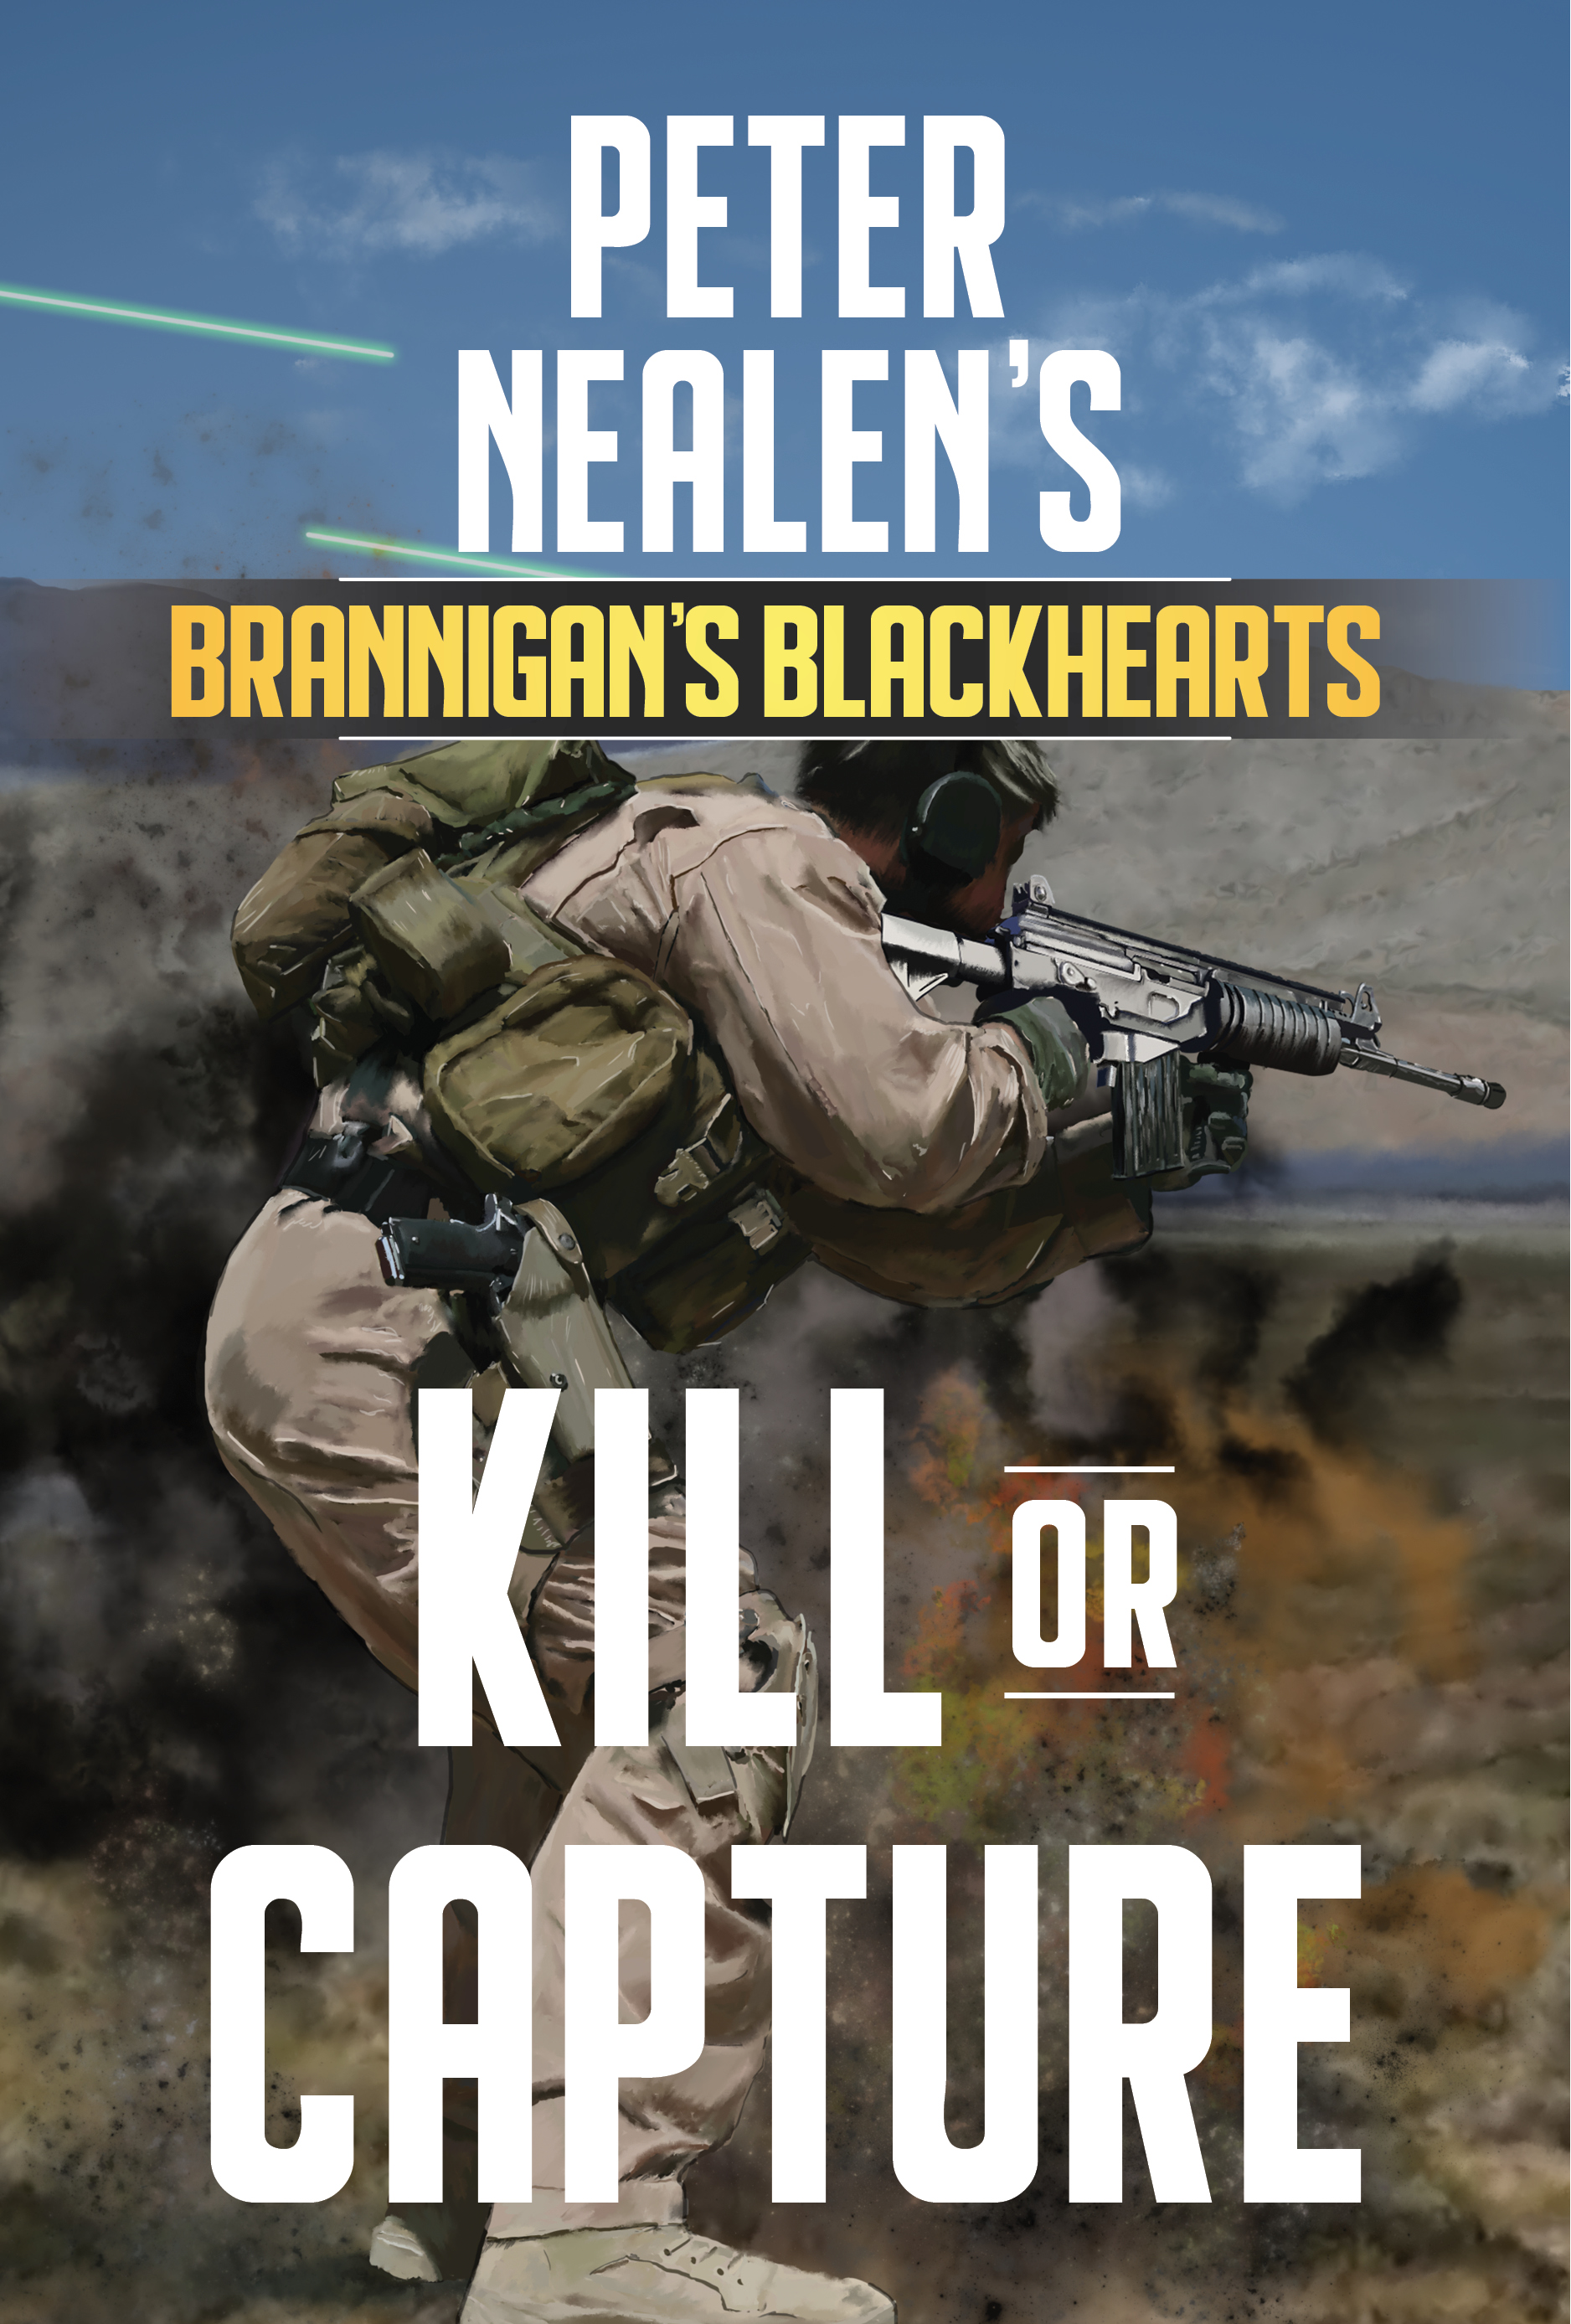 American Praetorians - Peter Nealen's Author Page and